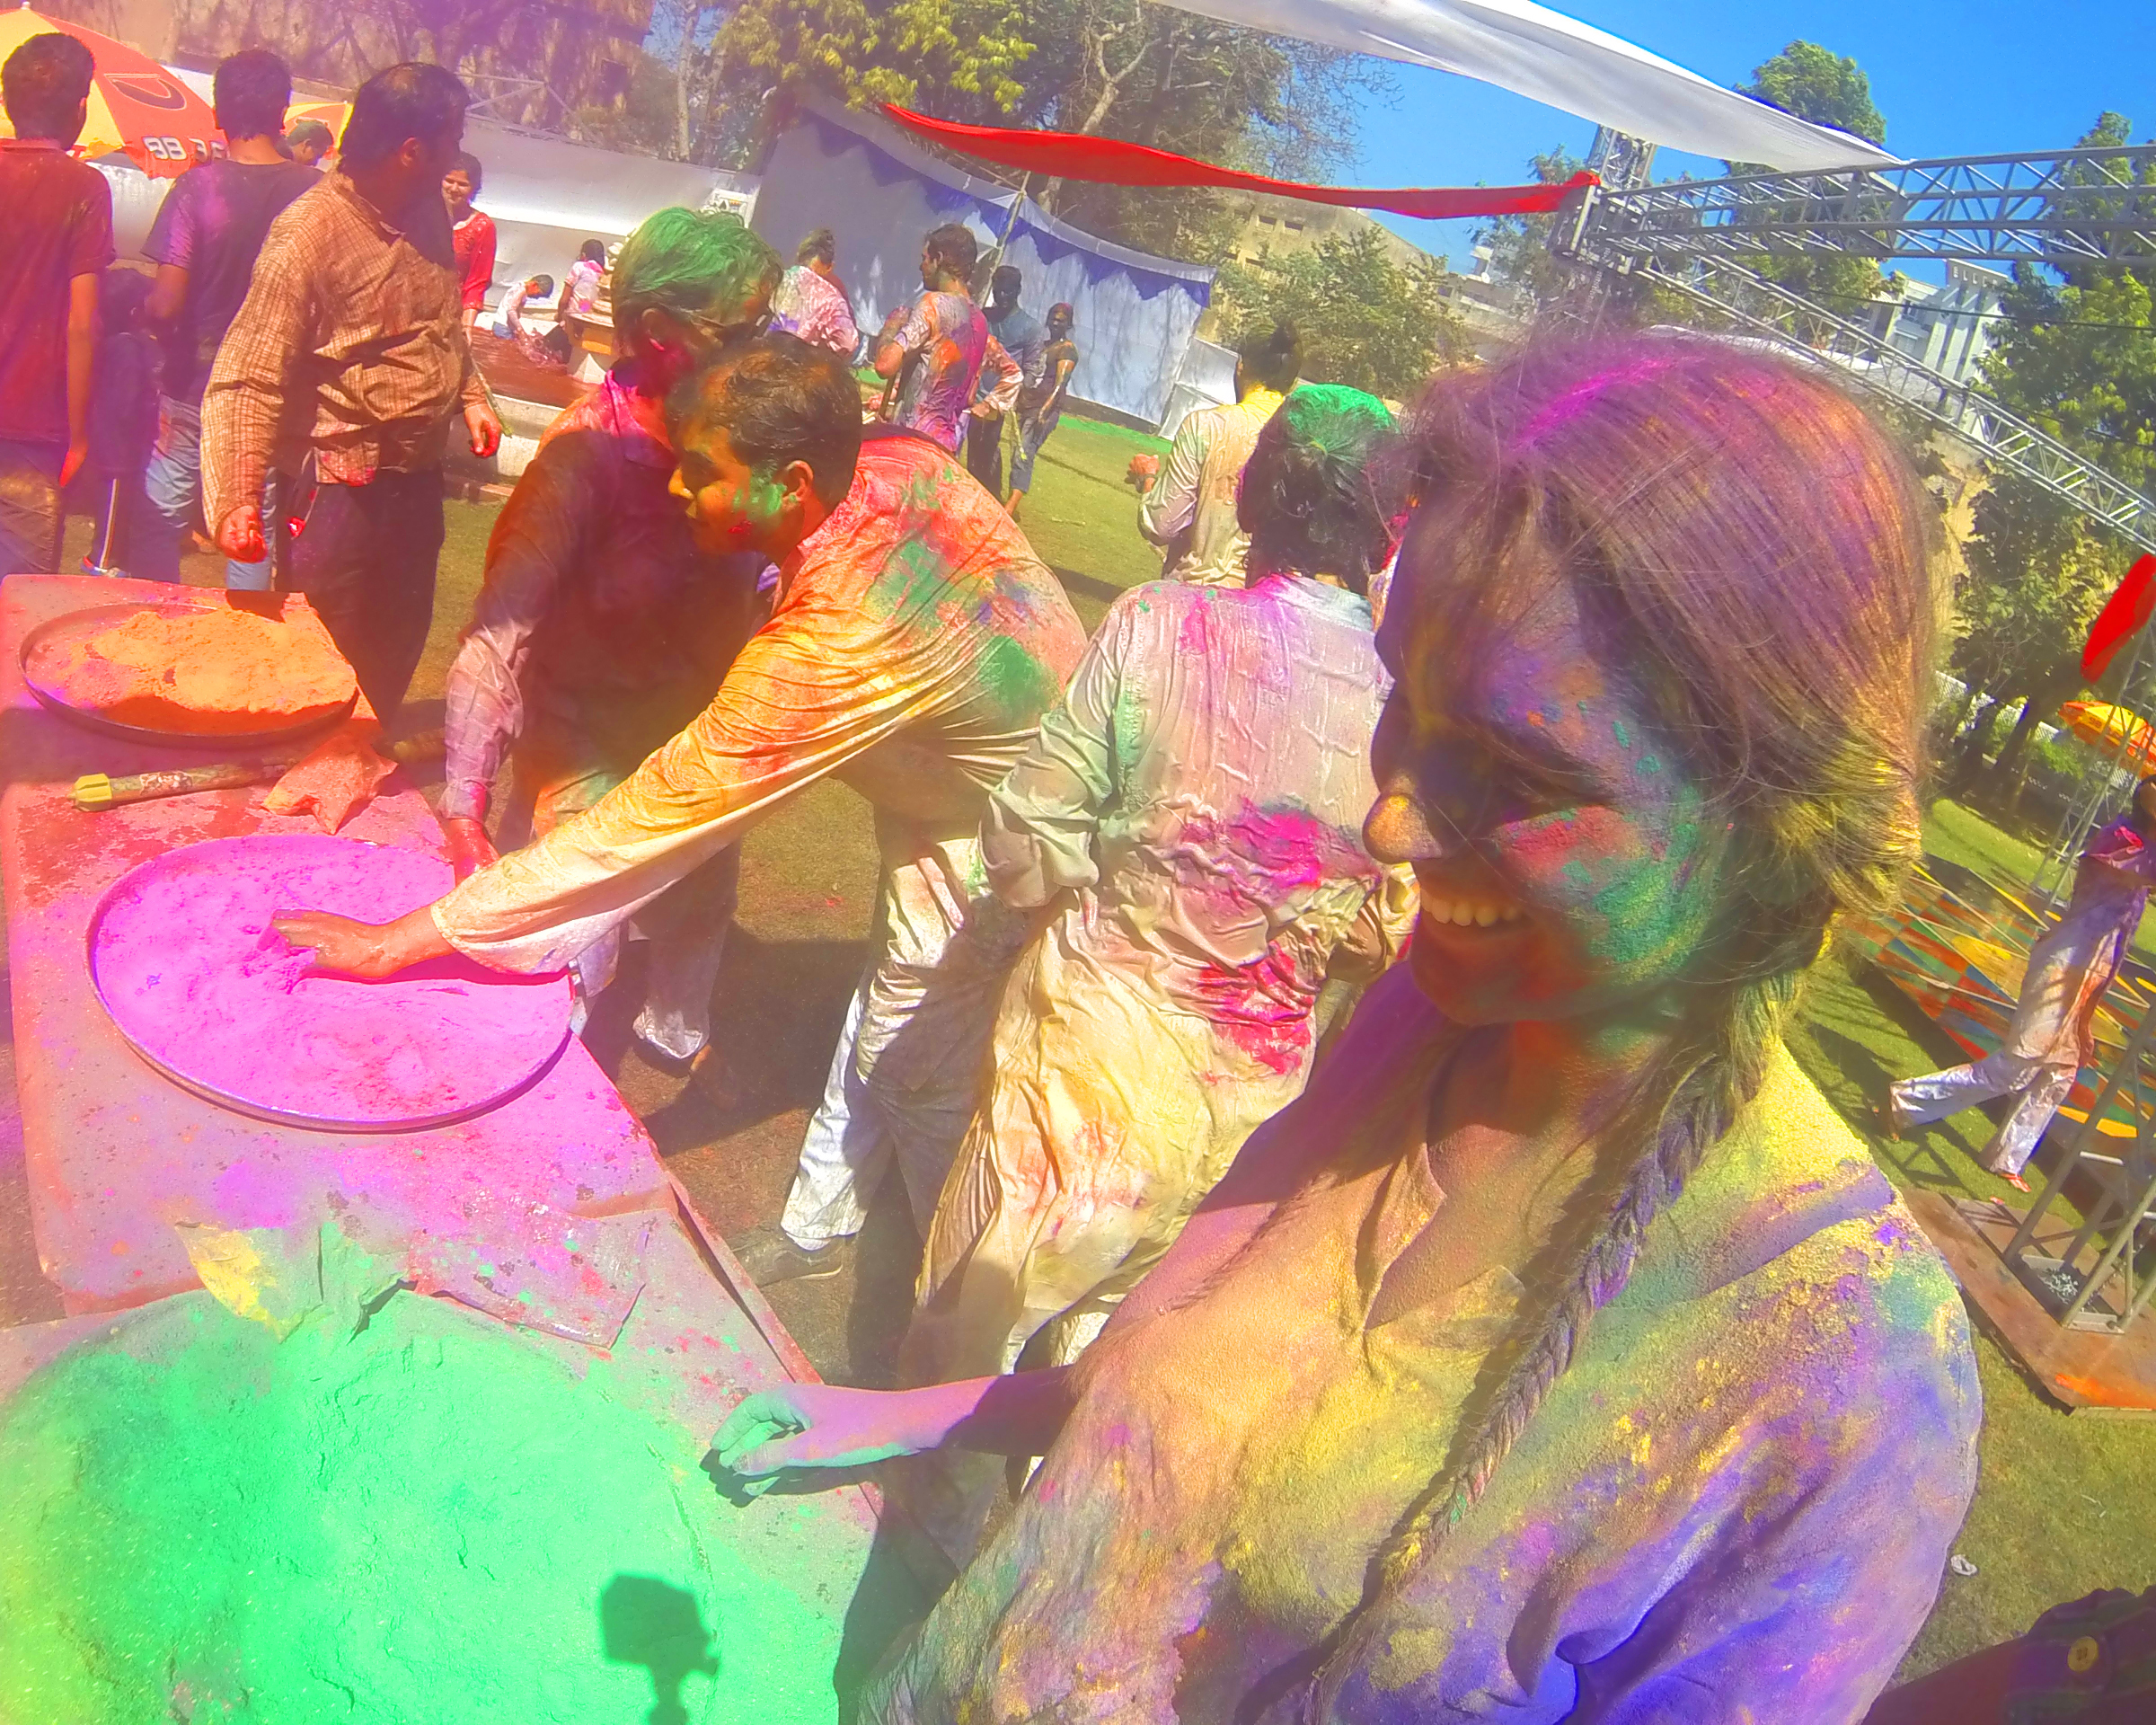 HAPPY HOLI, A GoPro Video